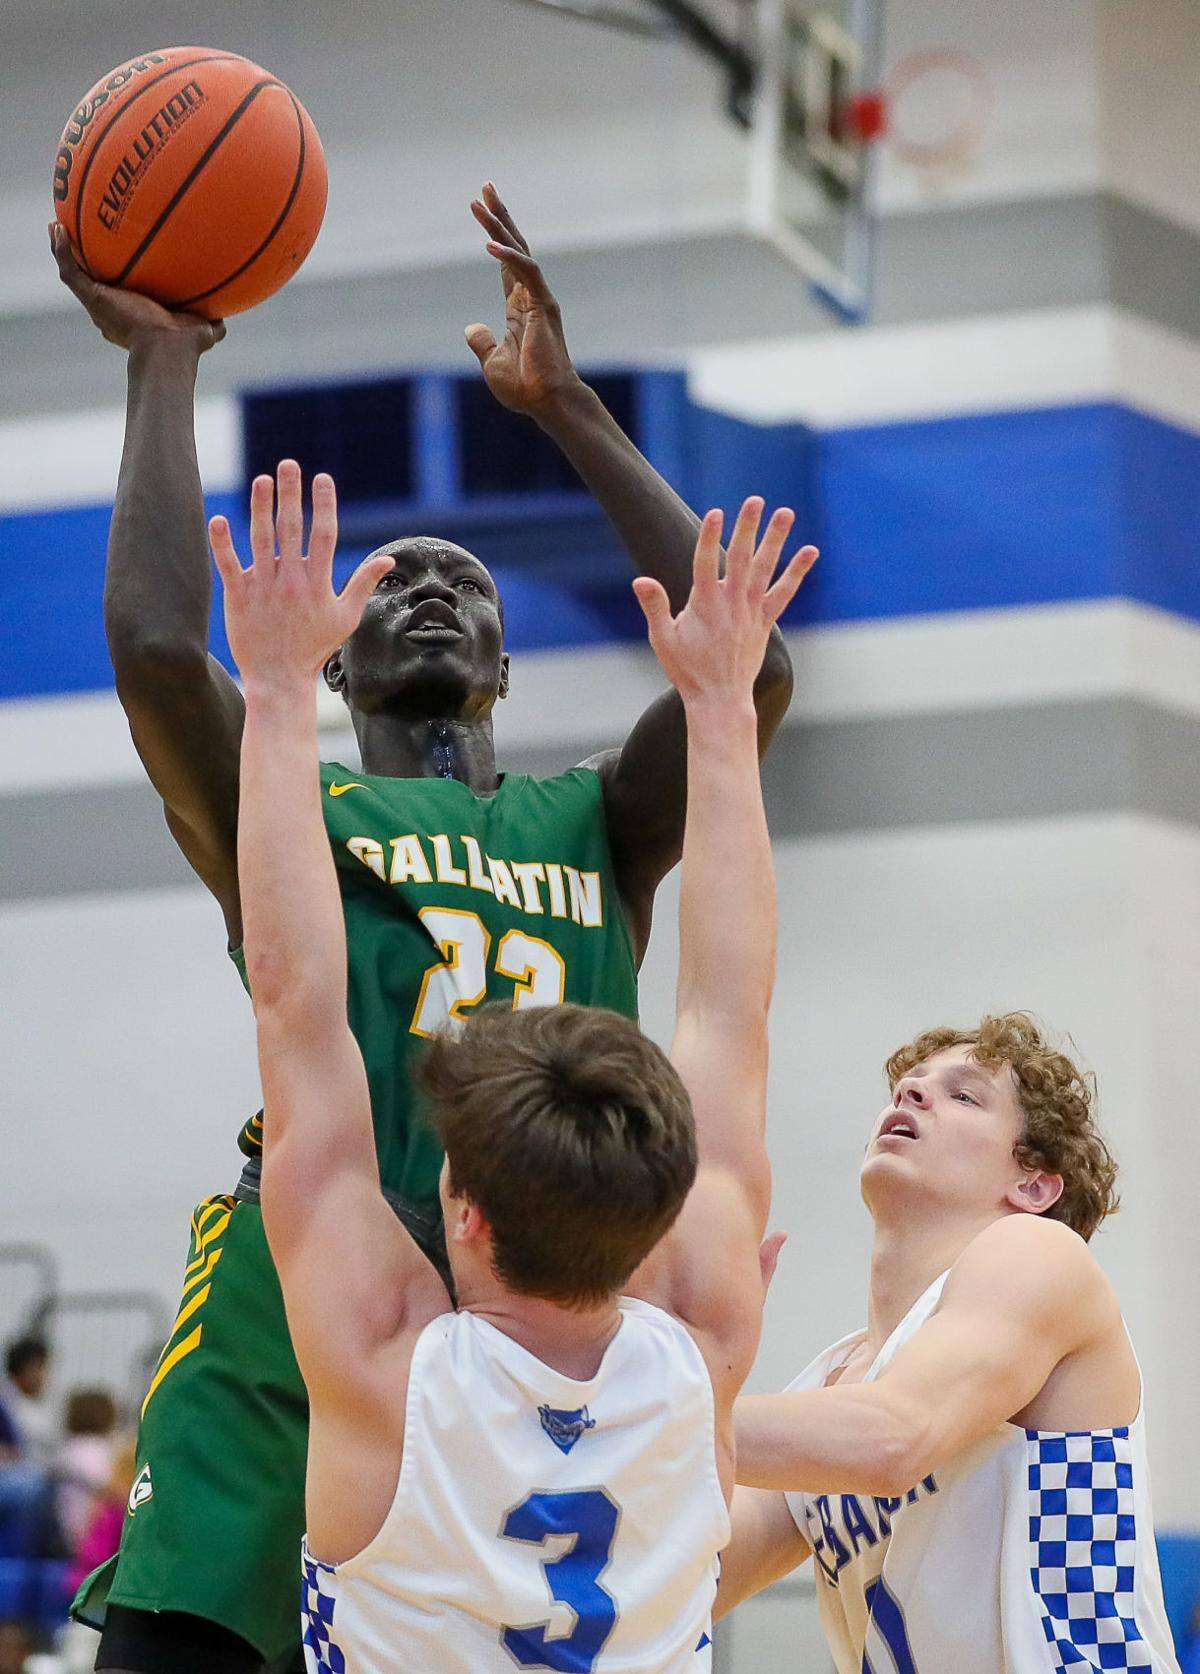 Beljwok Adaing attacks the basket for Gallatin.